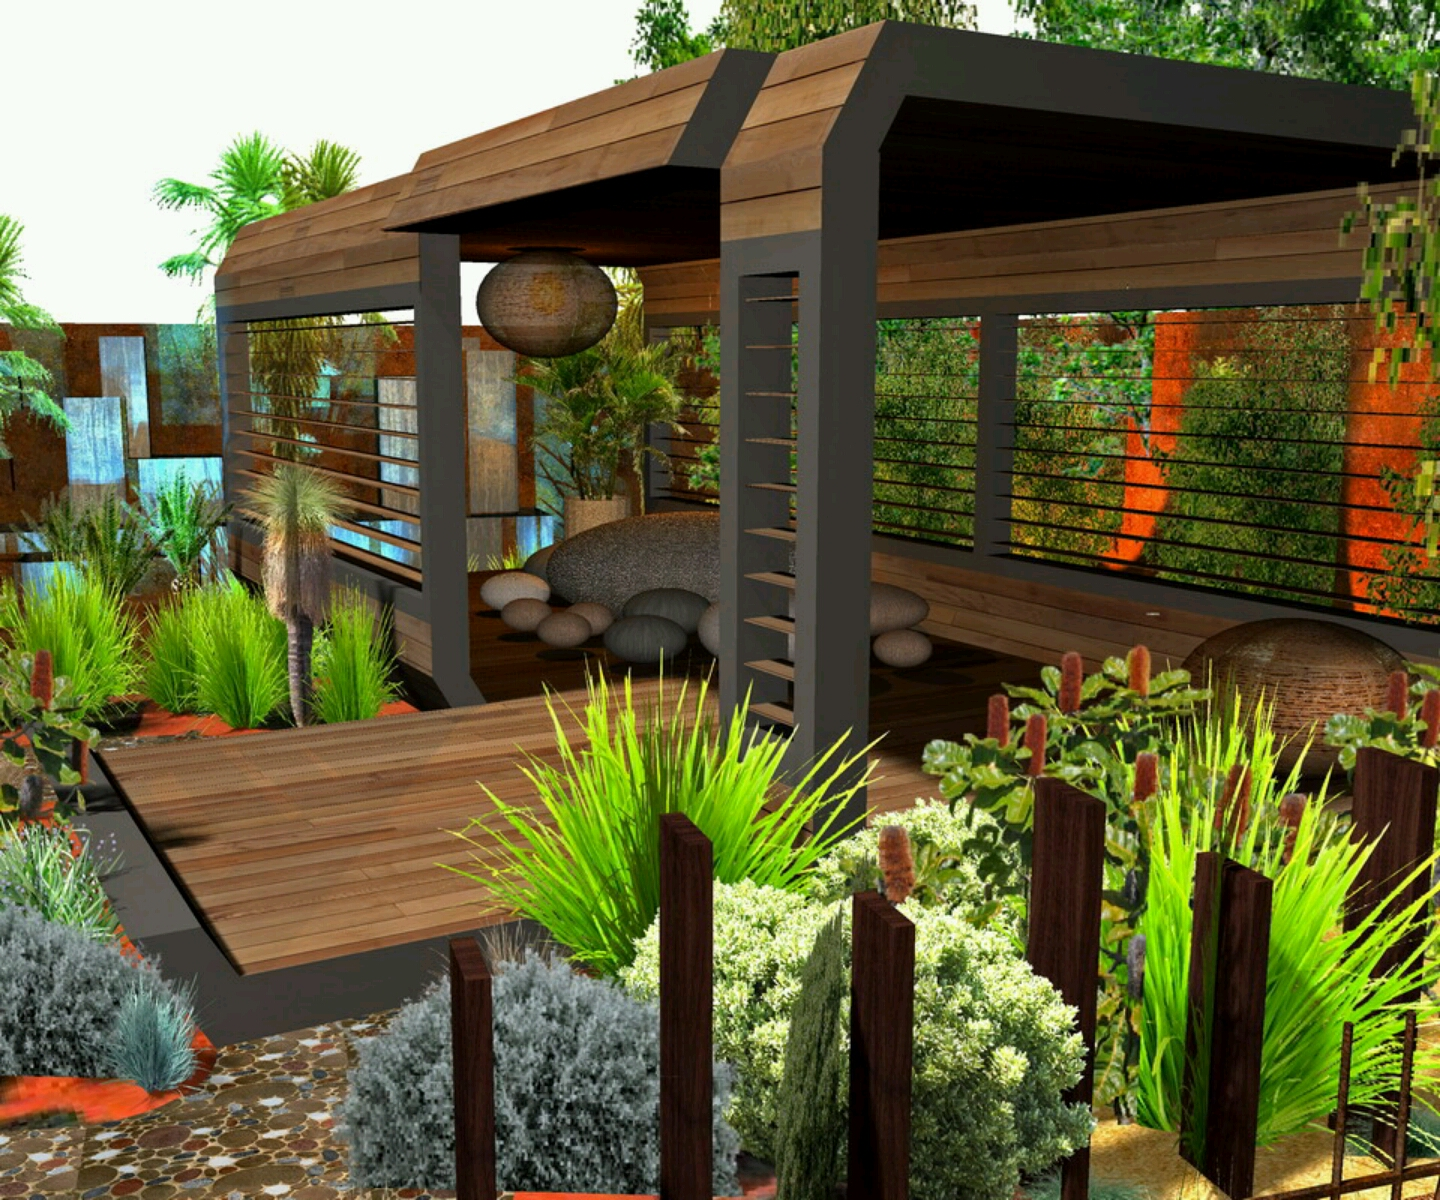 Home Gardening Design Ideas: Modern Homes Garden Designs Ideas.